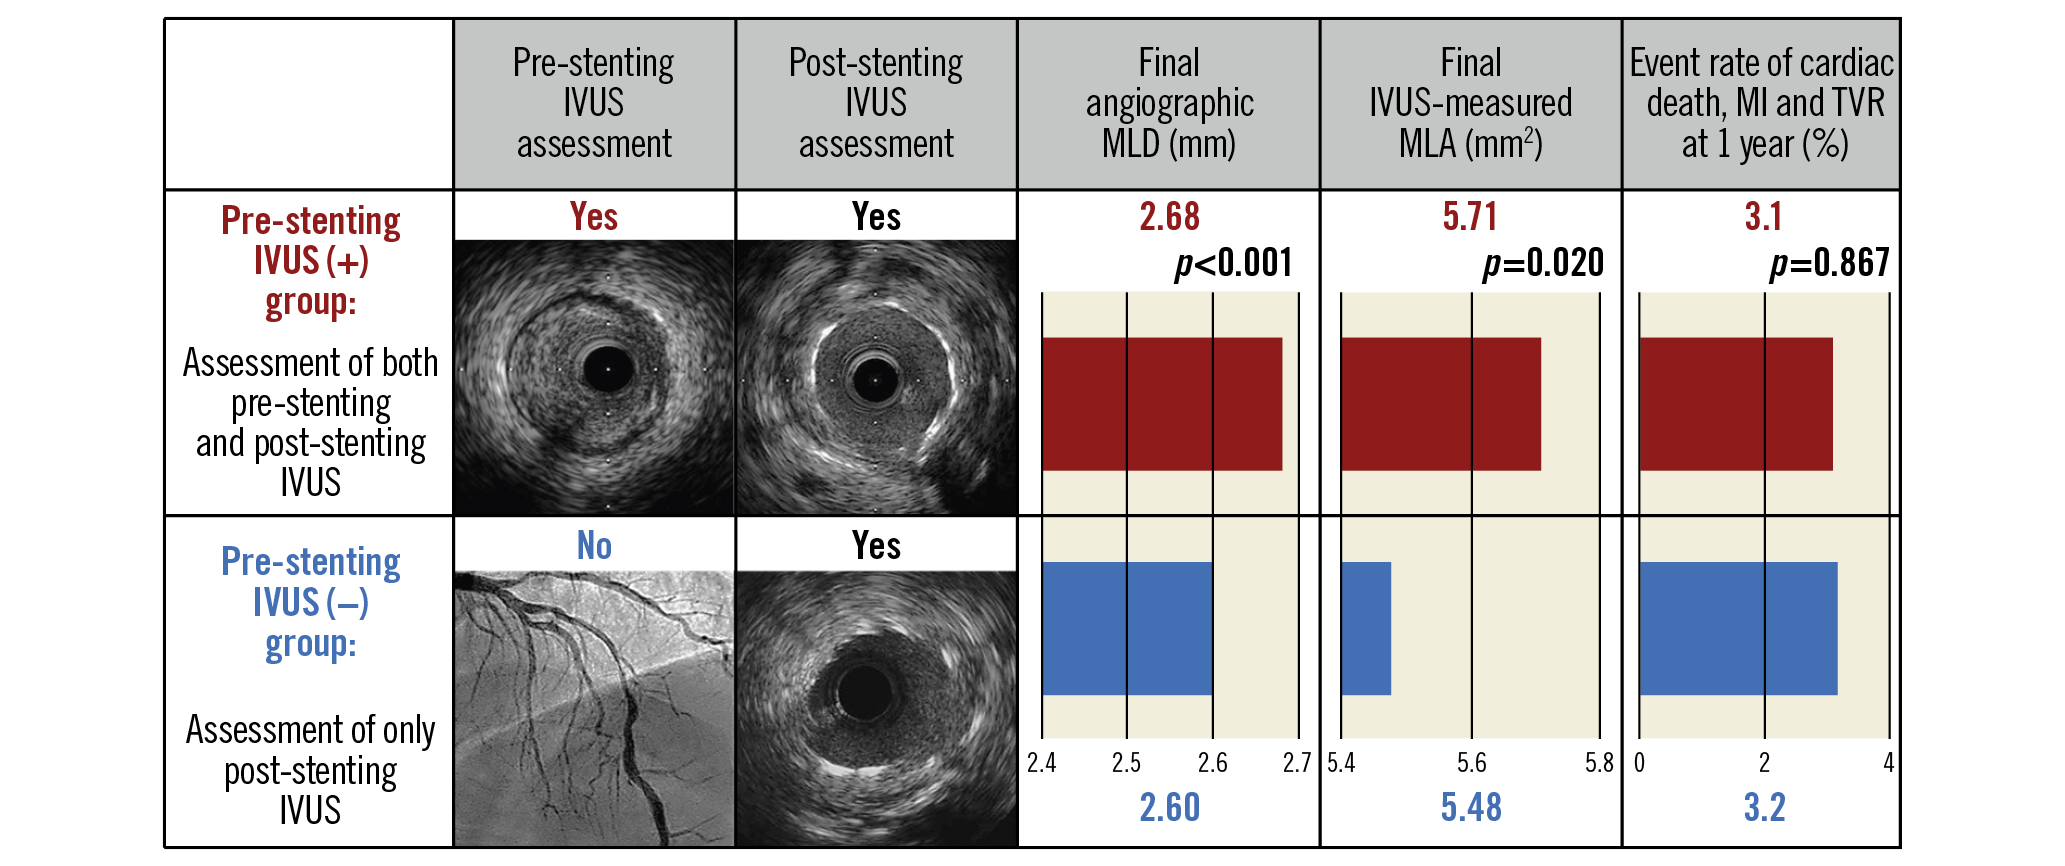 Visual summary. Acute and one-year outcomes of pre-stenting intravascular ultrasound: a meta-analysis of randomised clinical trials.